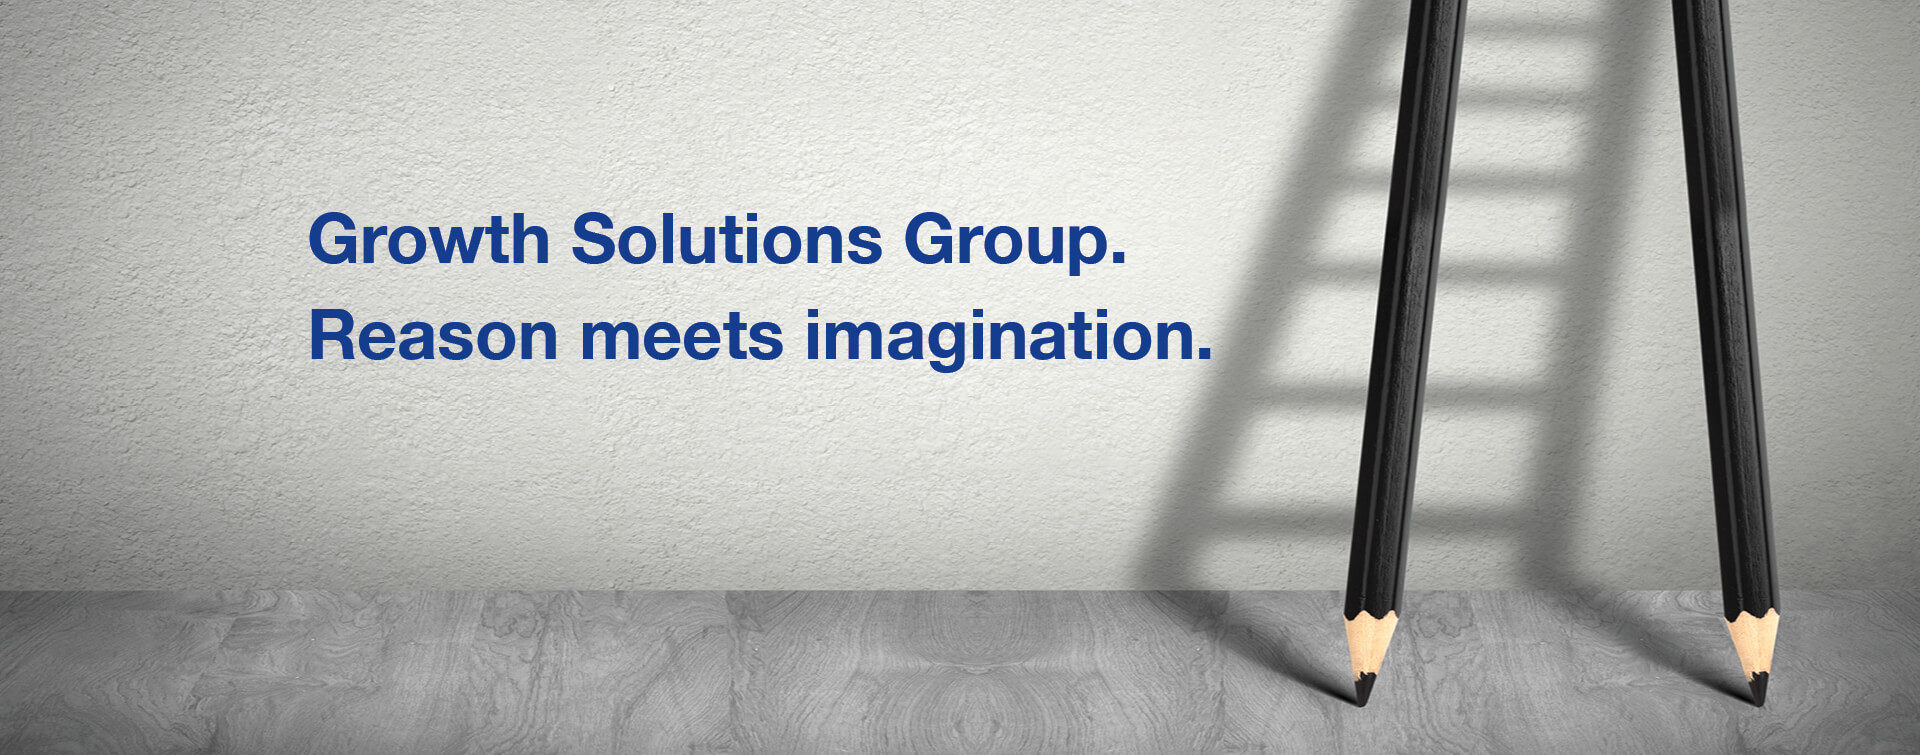 Growth Solutions Group (GSG)